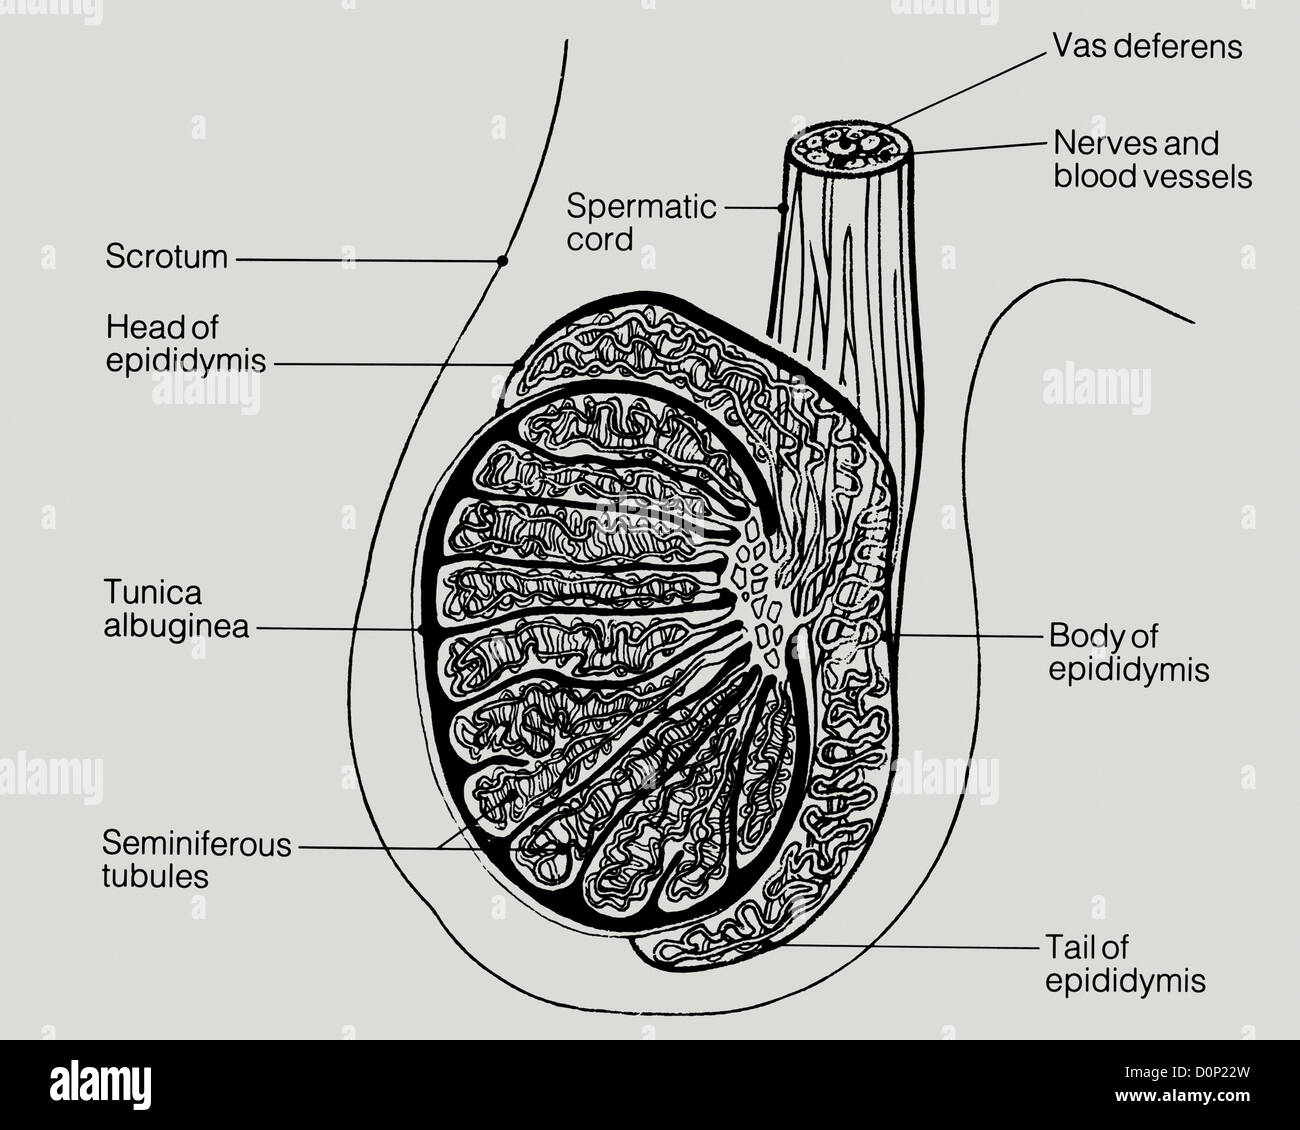 A line drawing of a lateral view of human testicles, including the scrotum, epididymis, and vas deferens. - Stock Image